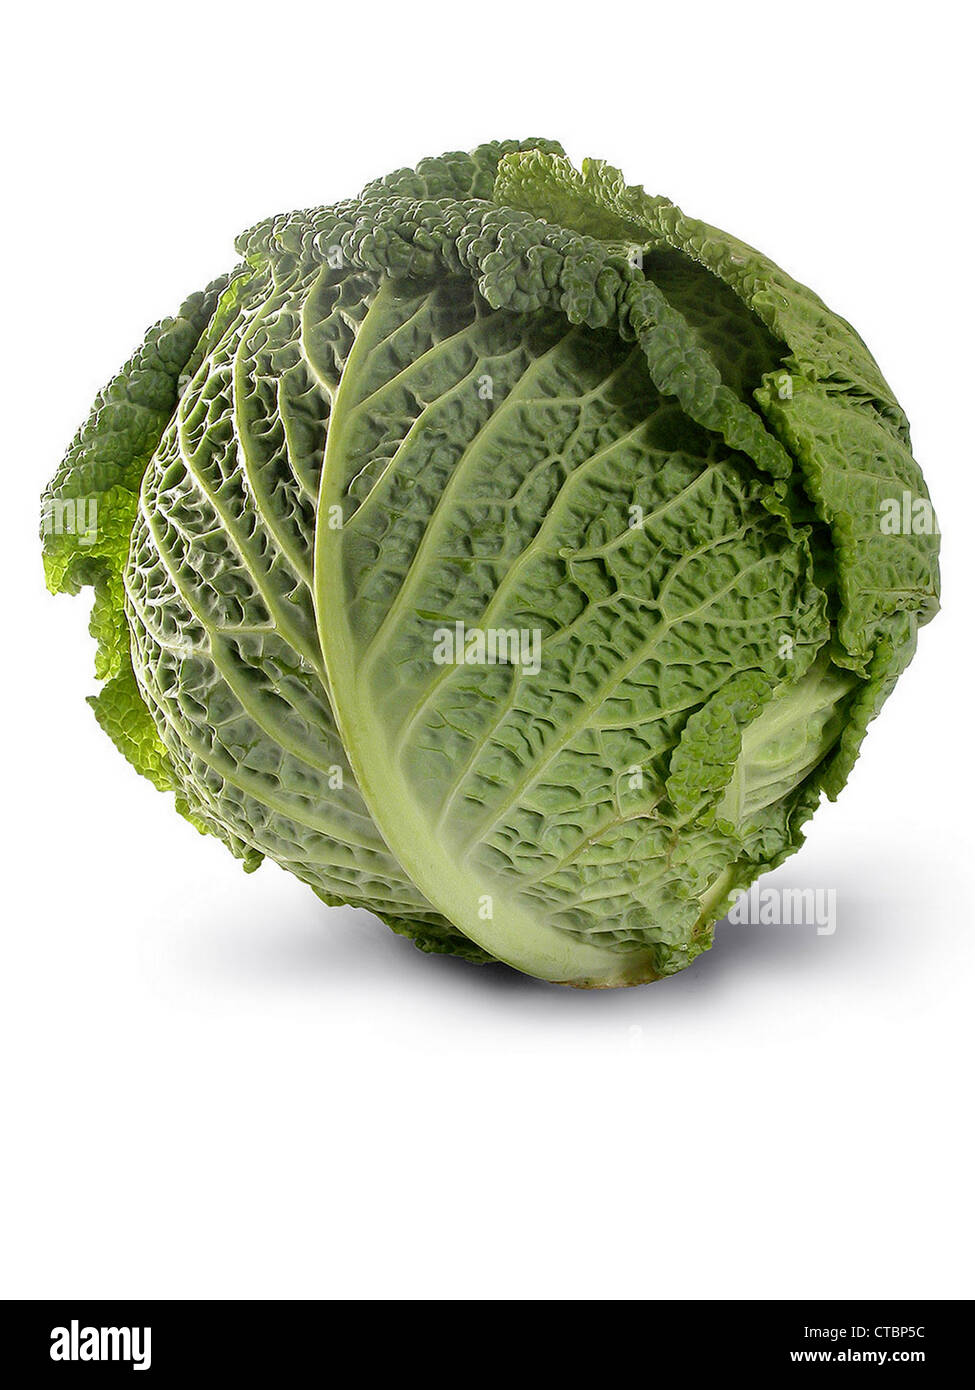 Fresh healthy looking savoy cabbage isolated on white background. - Stock Image